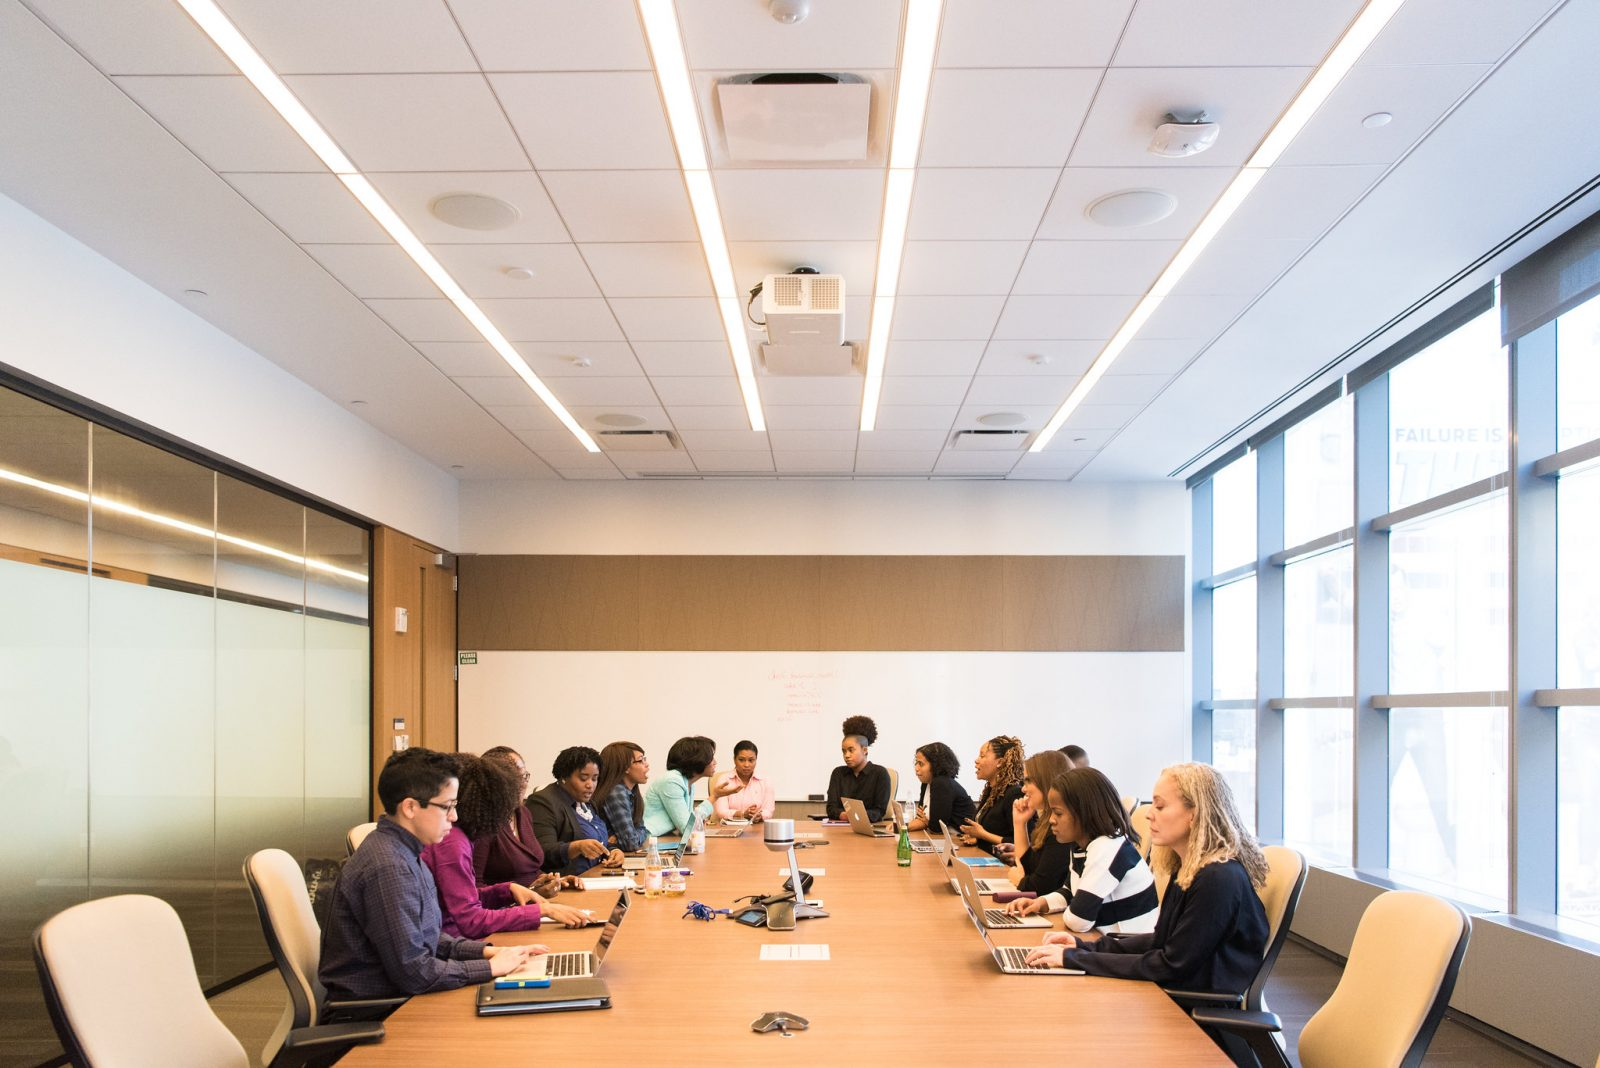 Women in a warmly lit boardroom with laptops